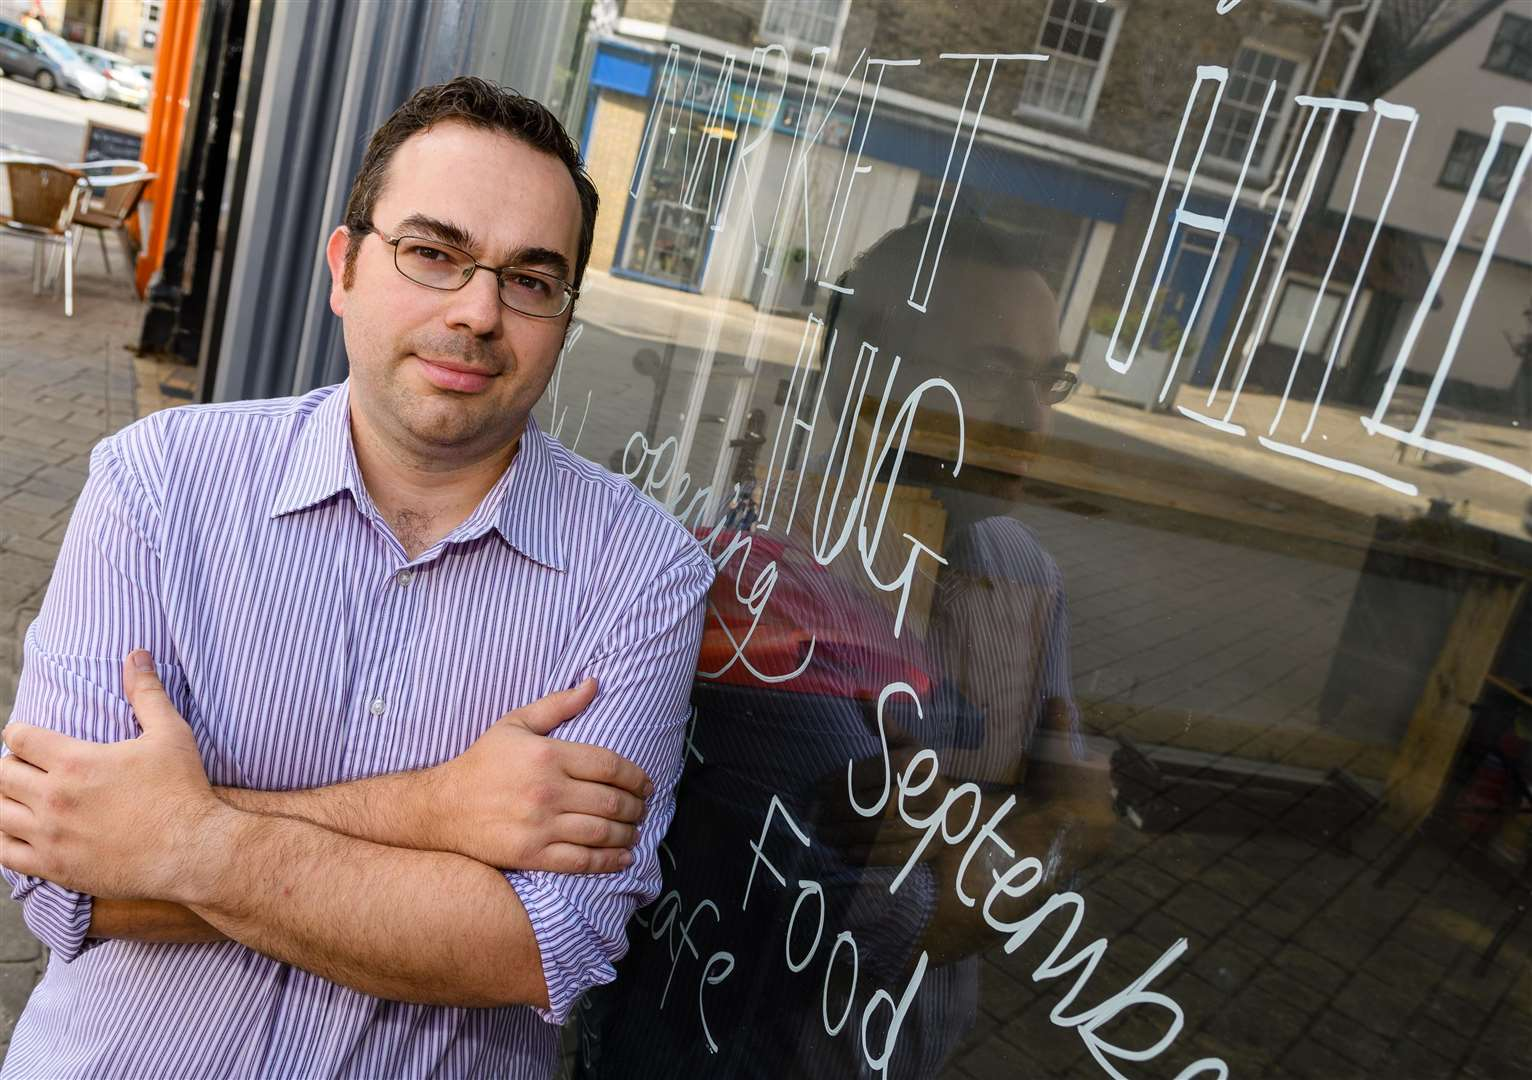 James Richardson Thacker is due to open his café Hug, at the end of the month. Picture by Mark Bullimore.